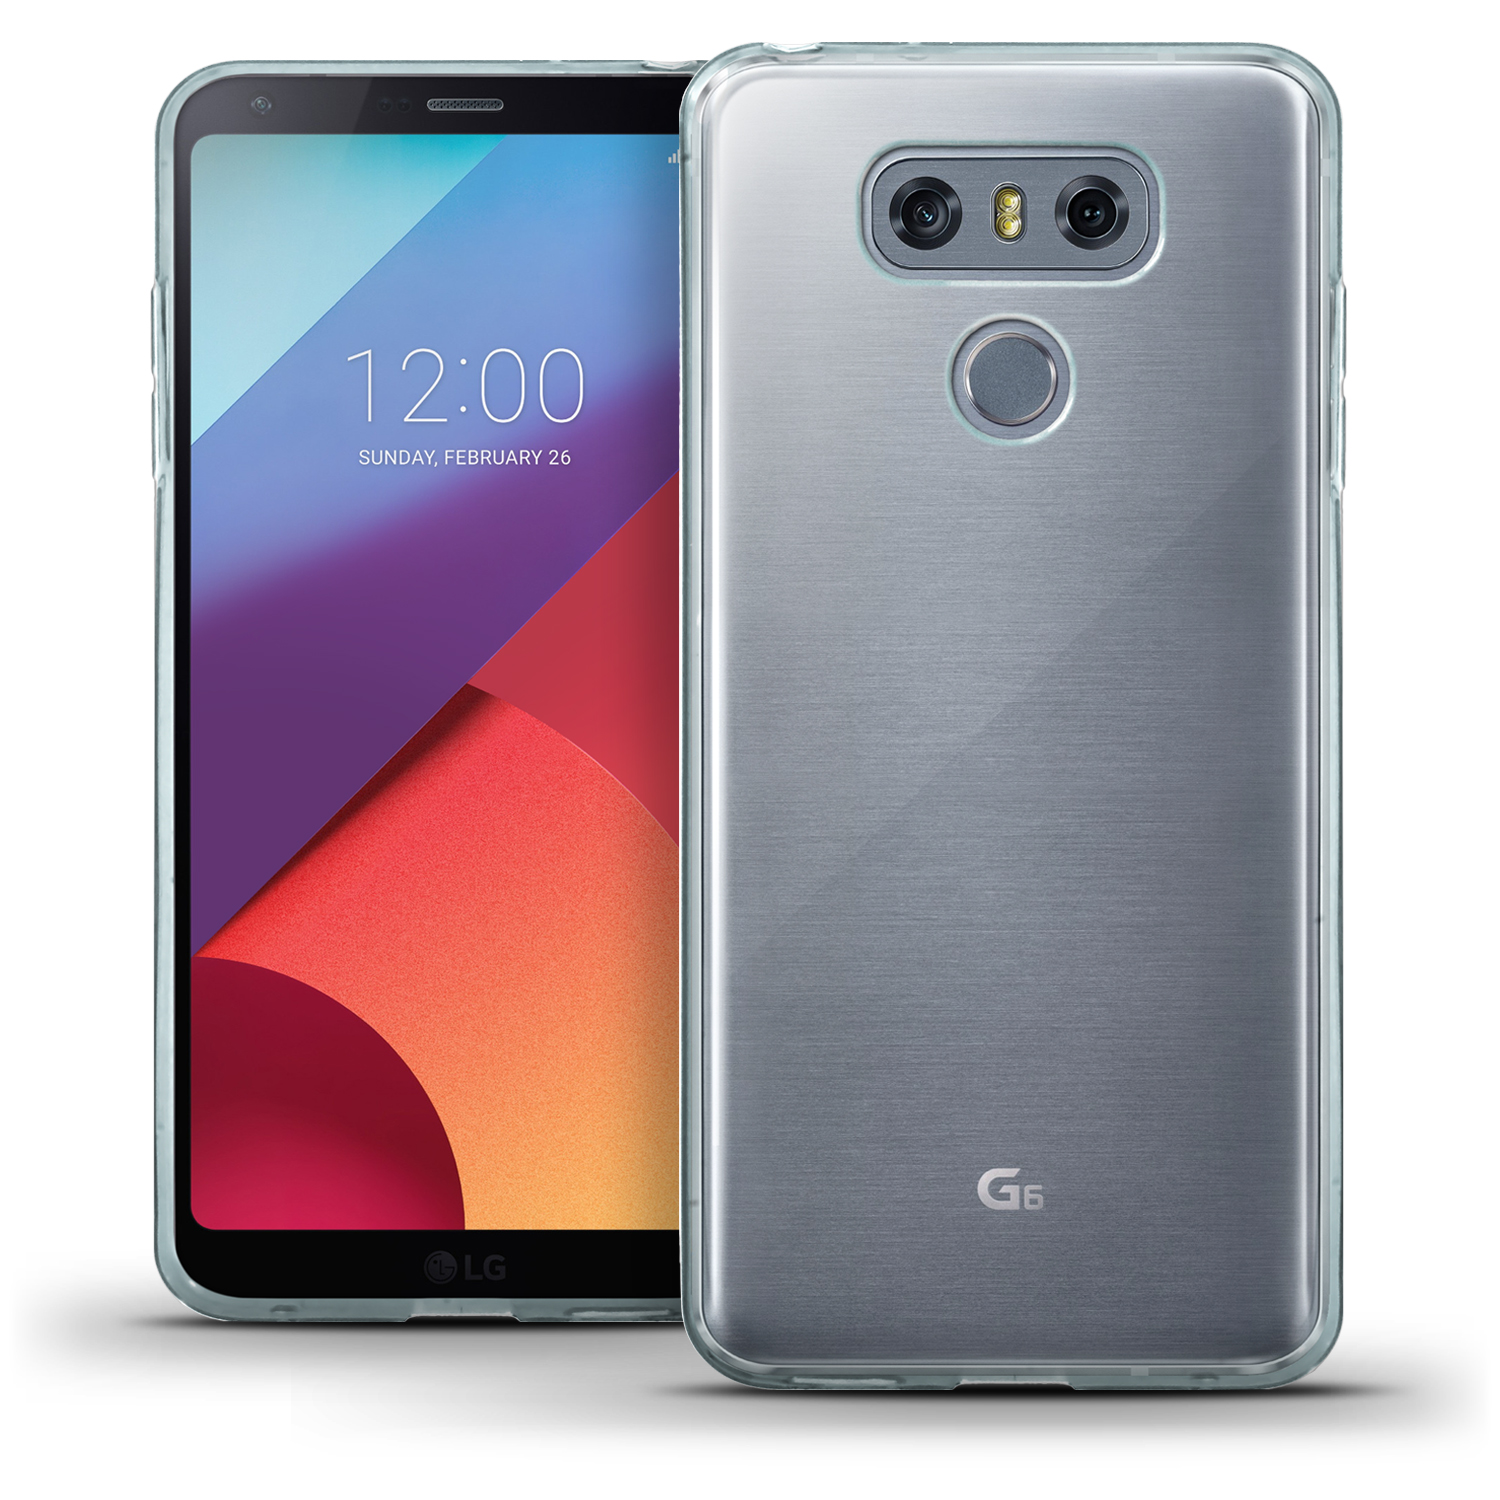 iGadgitz Glossy TPU Gel Skin Case Cover for LG G6 H870 (2017) + Screen Protector